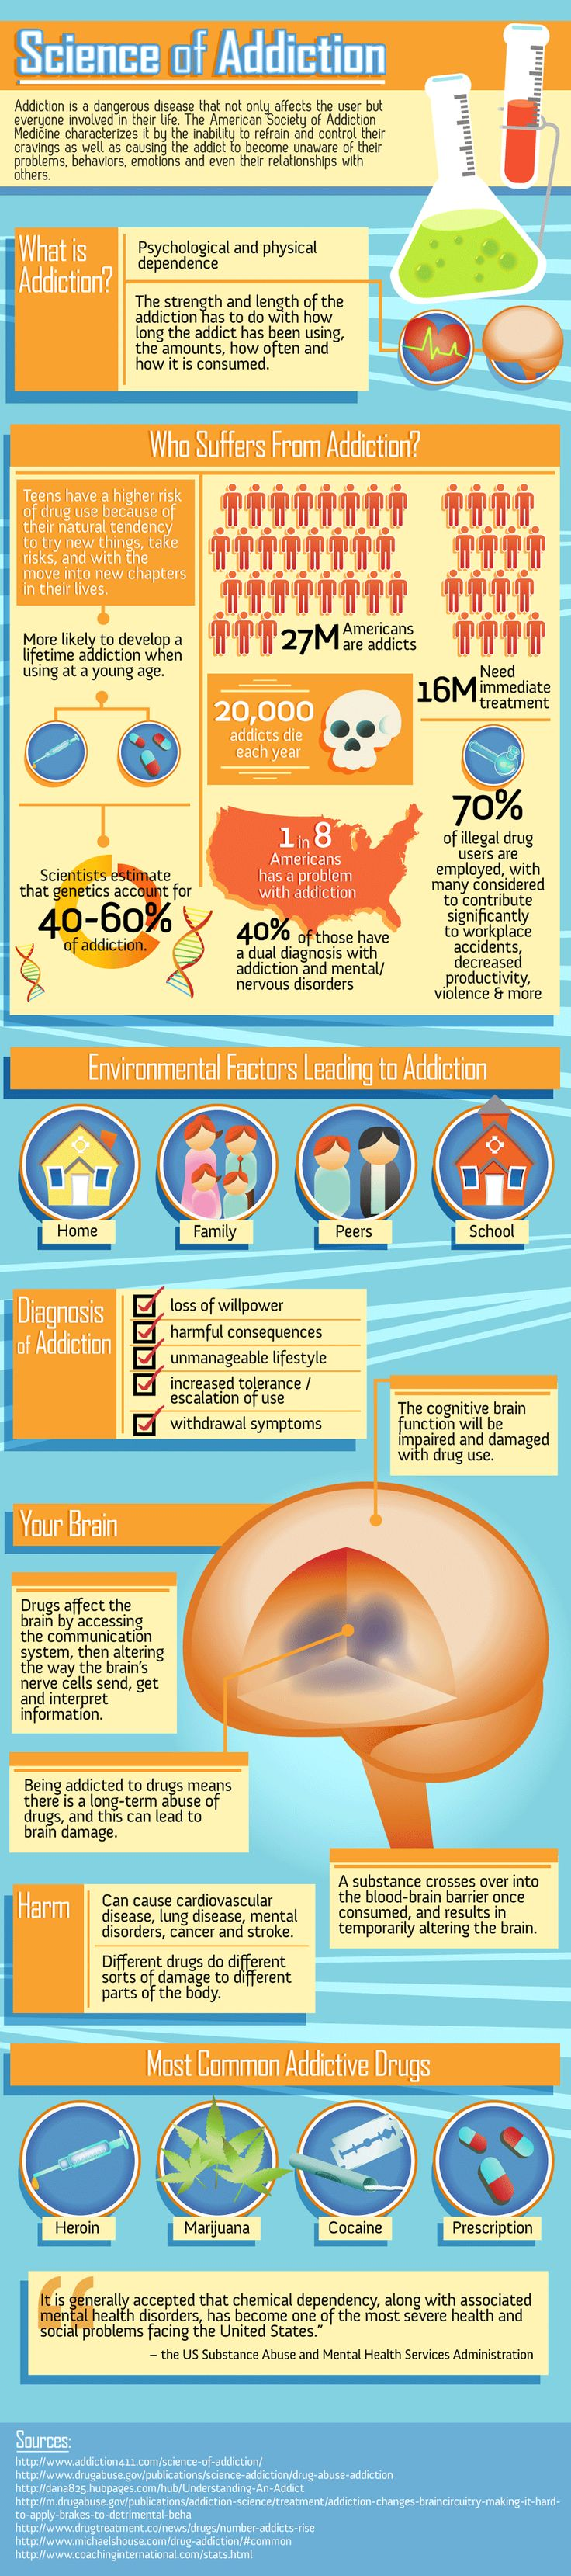 The Science of Addiction [Infographic] - #Recovery and #SoberLiving Blog